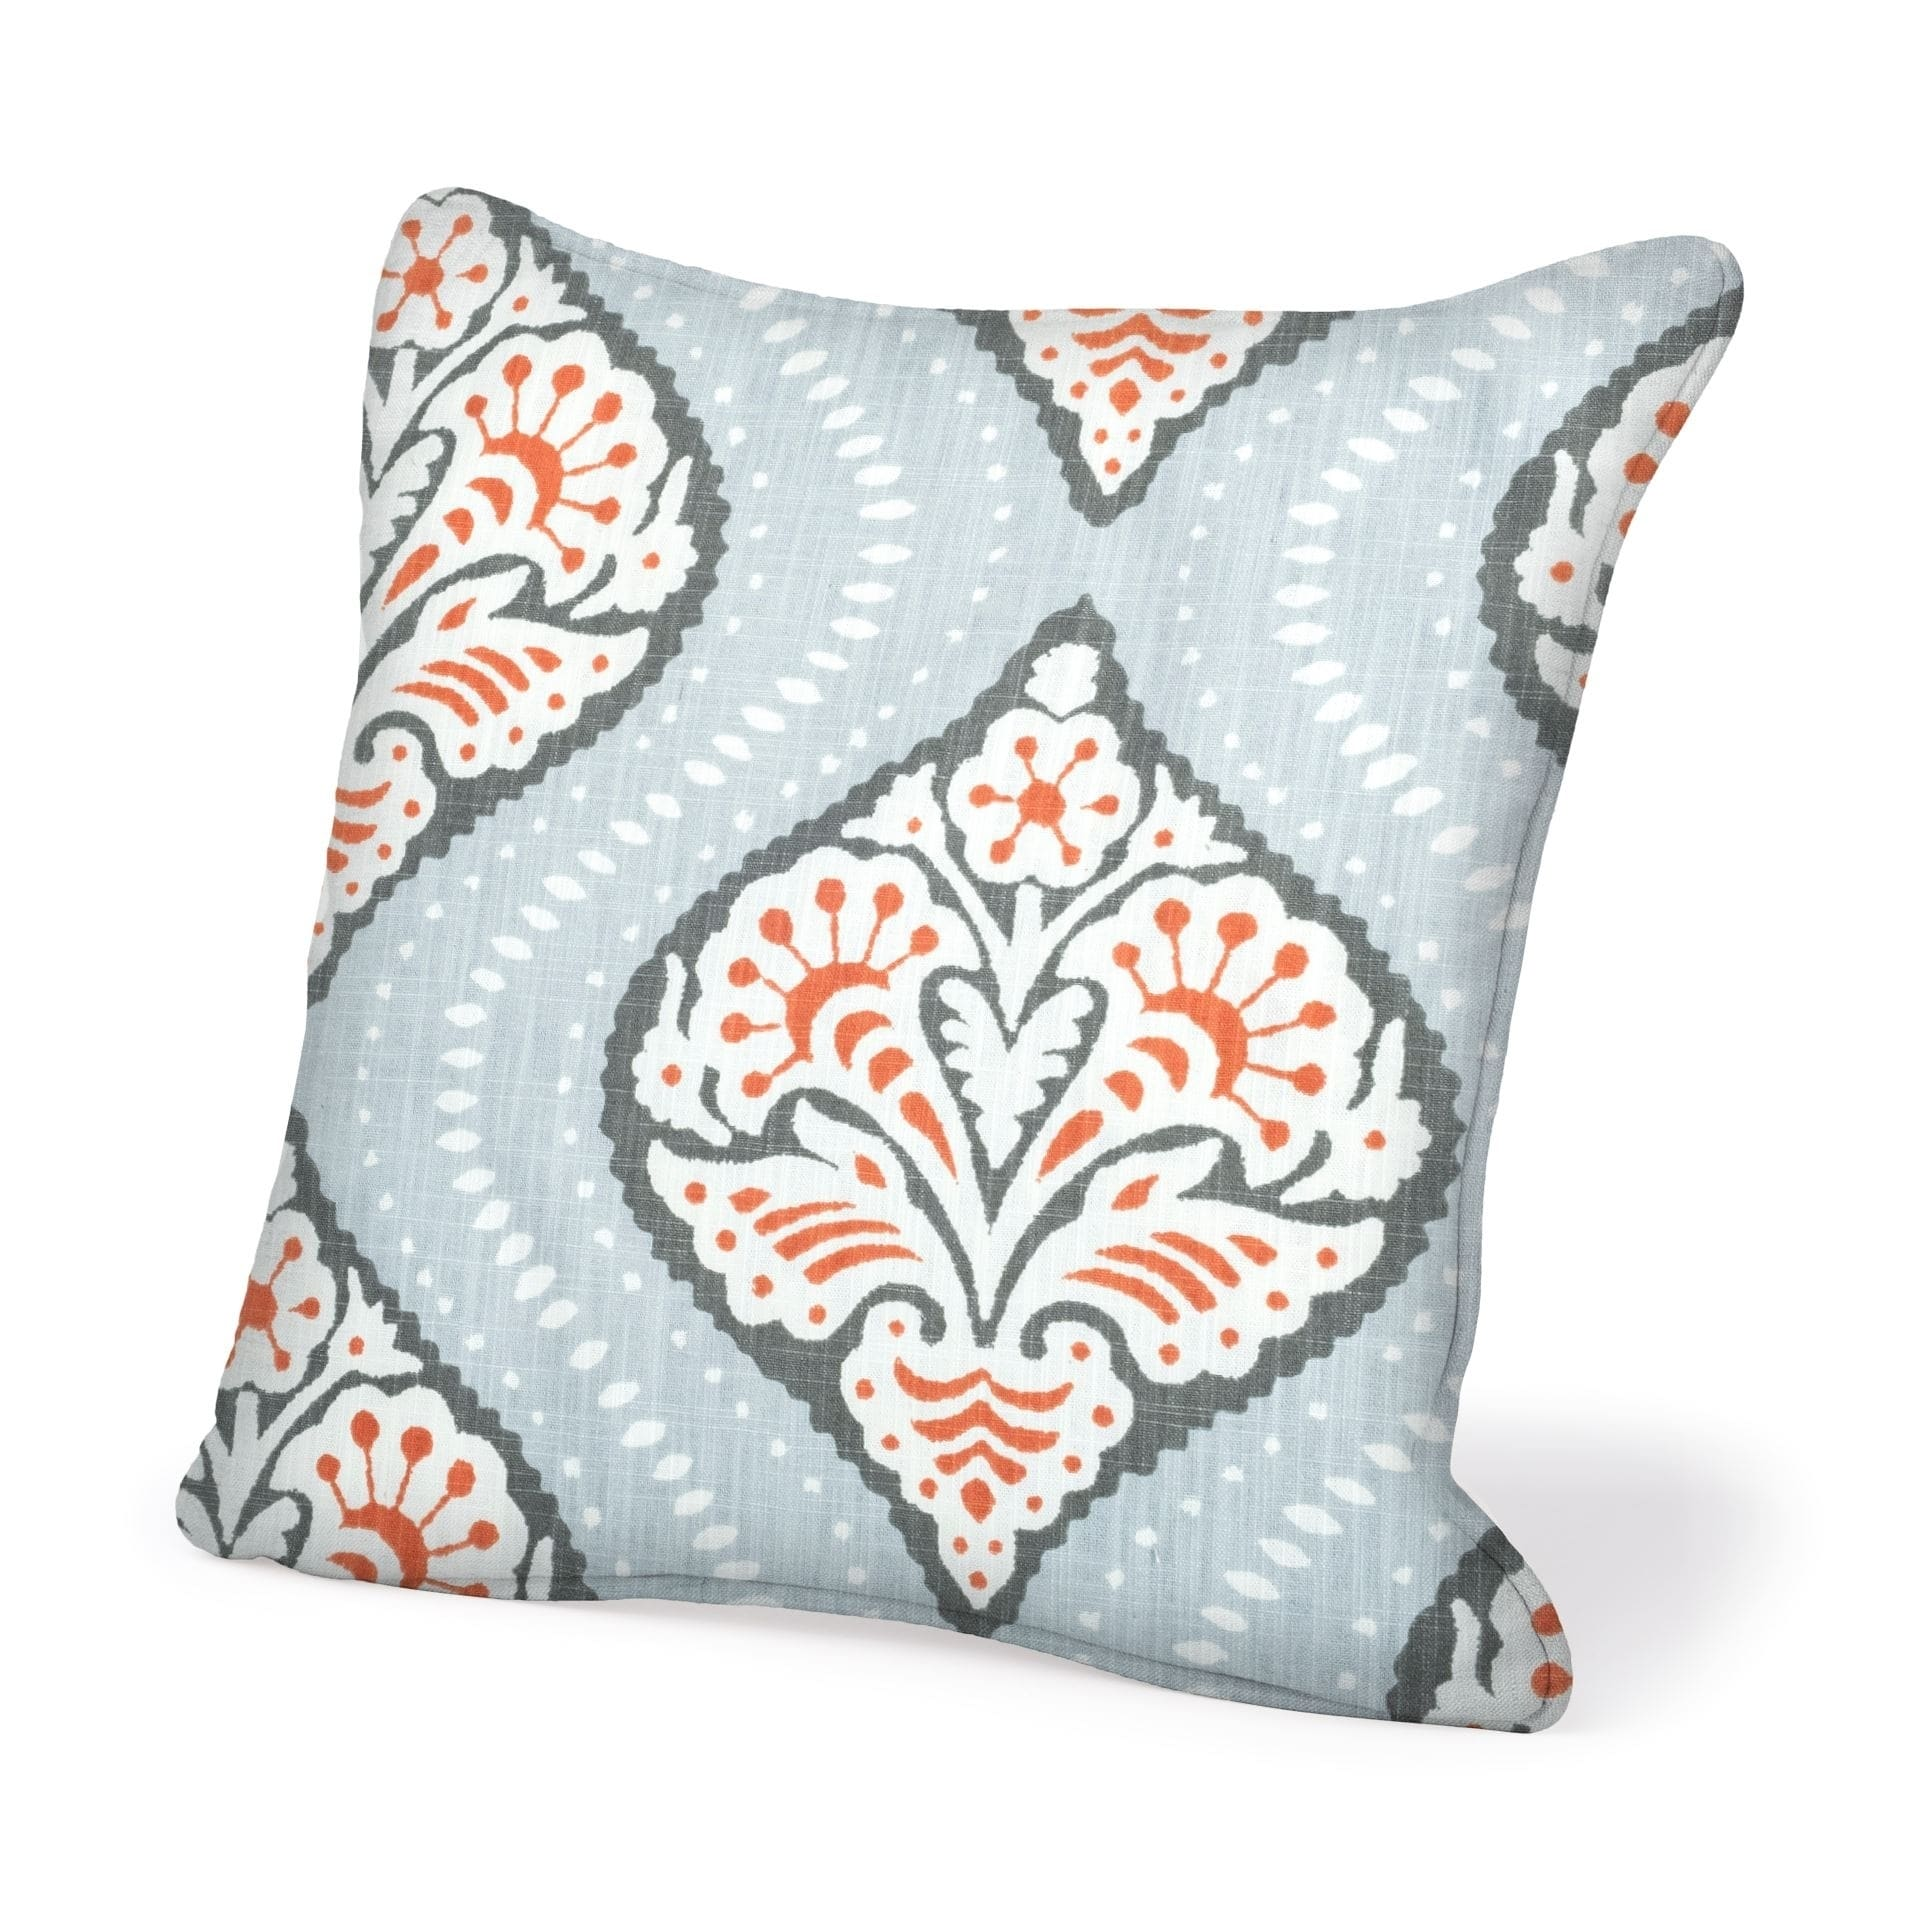 Mercana Snapdragon III 22 x 22 (cover only) Decorative Pillow